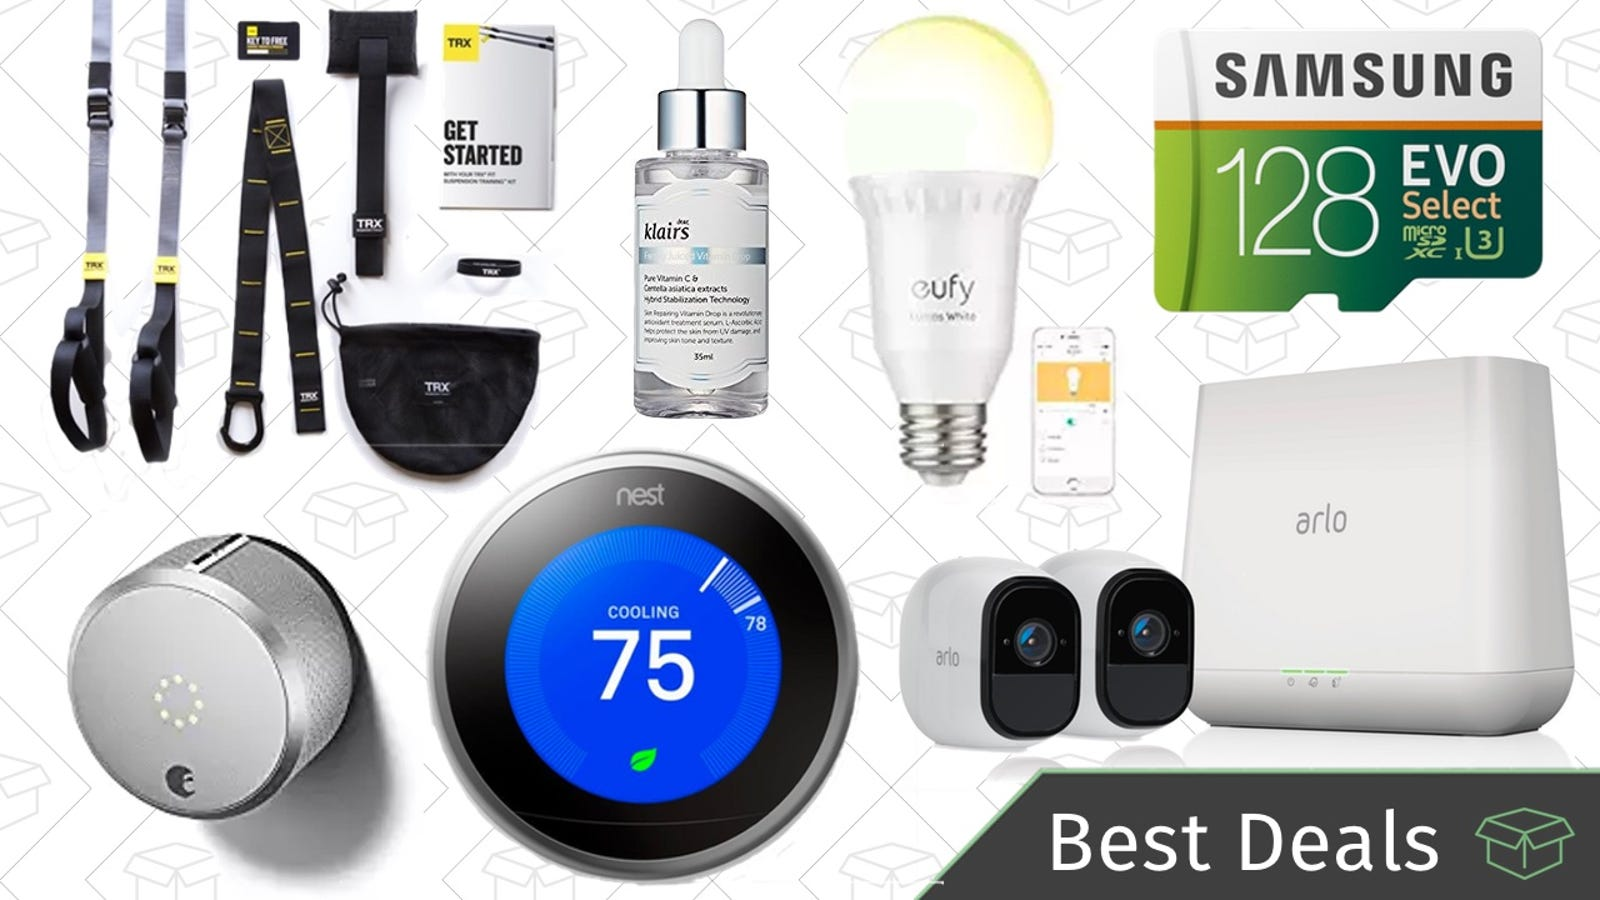 Mondays Best Deals Smart Home Microsd Card Trx Training National Brand Alternative Thermostat Wire 20 Gauge 2 500 Ft System And More